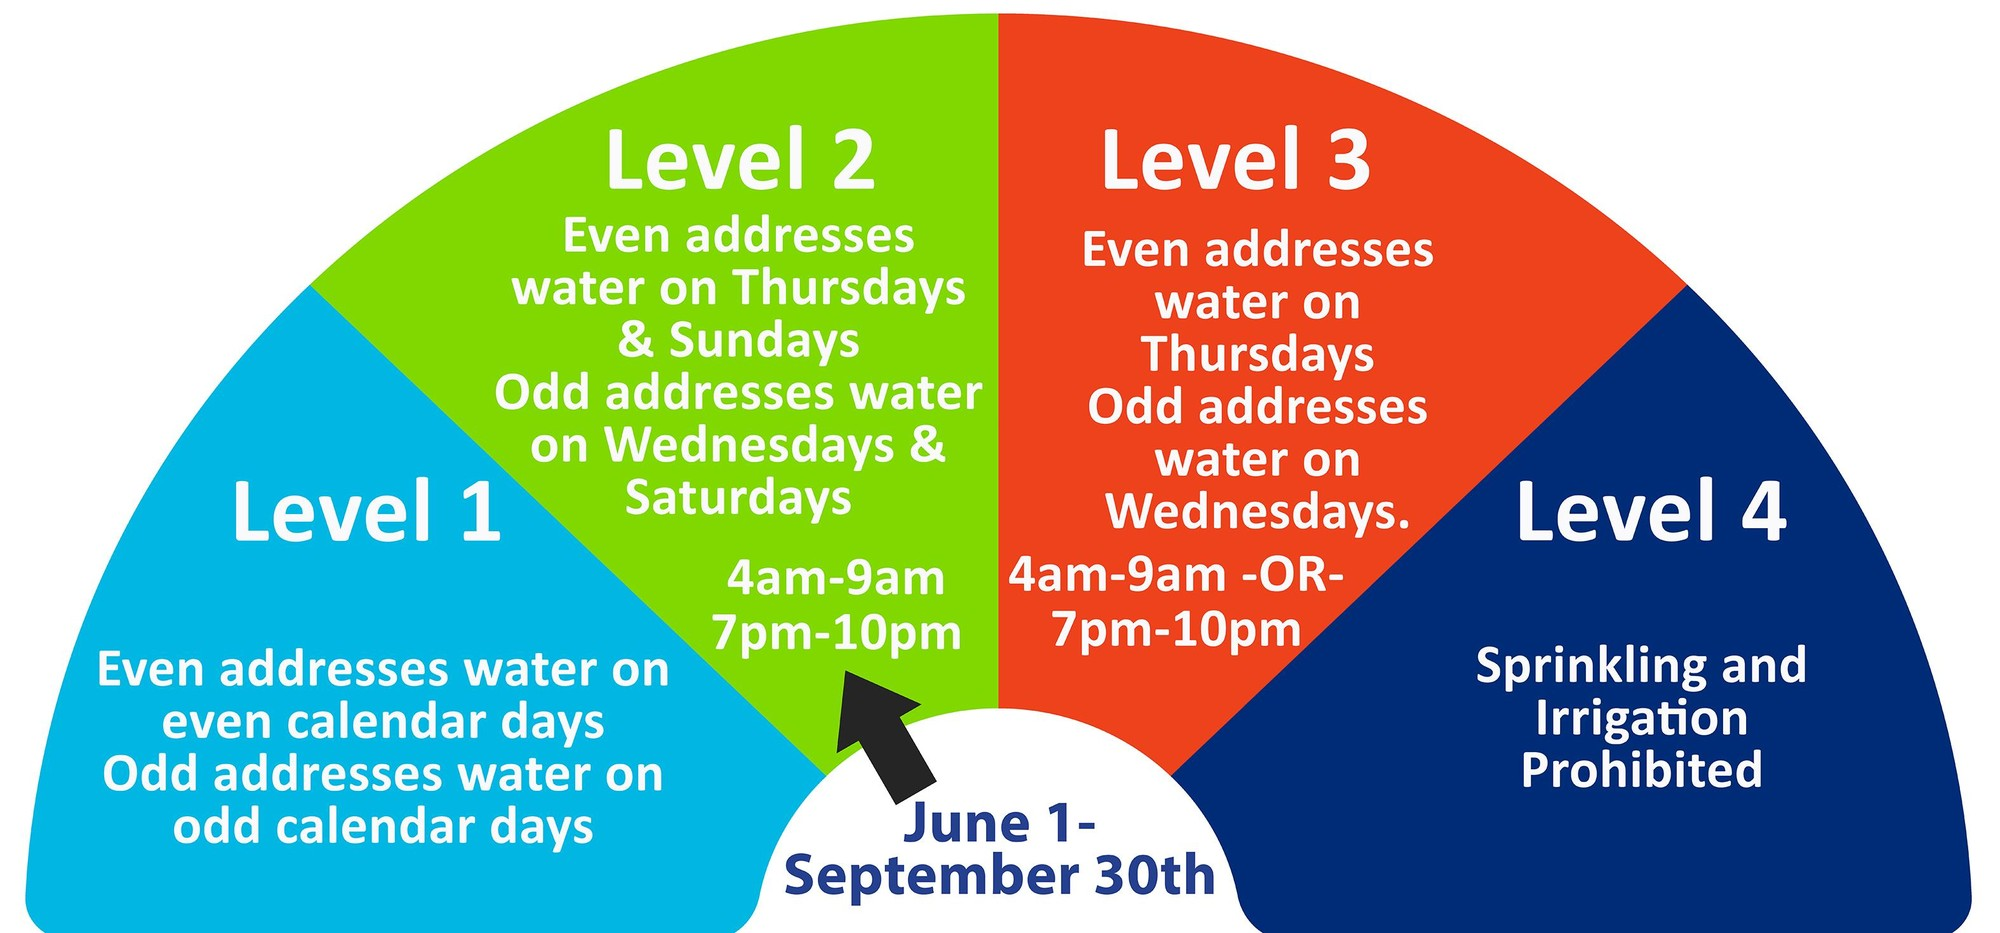 level 2 water restrictions nsw - photo #15